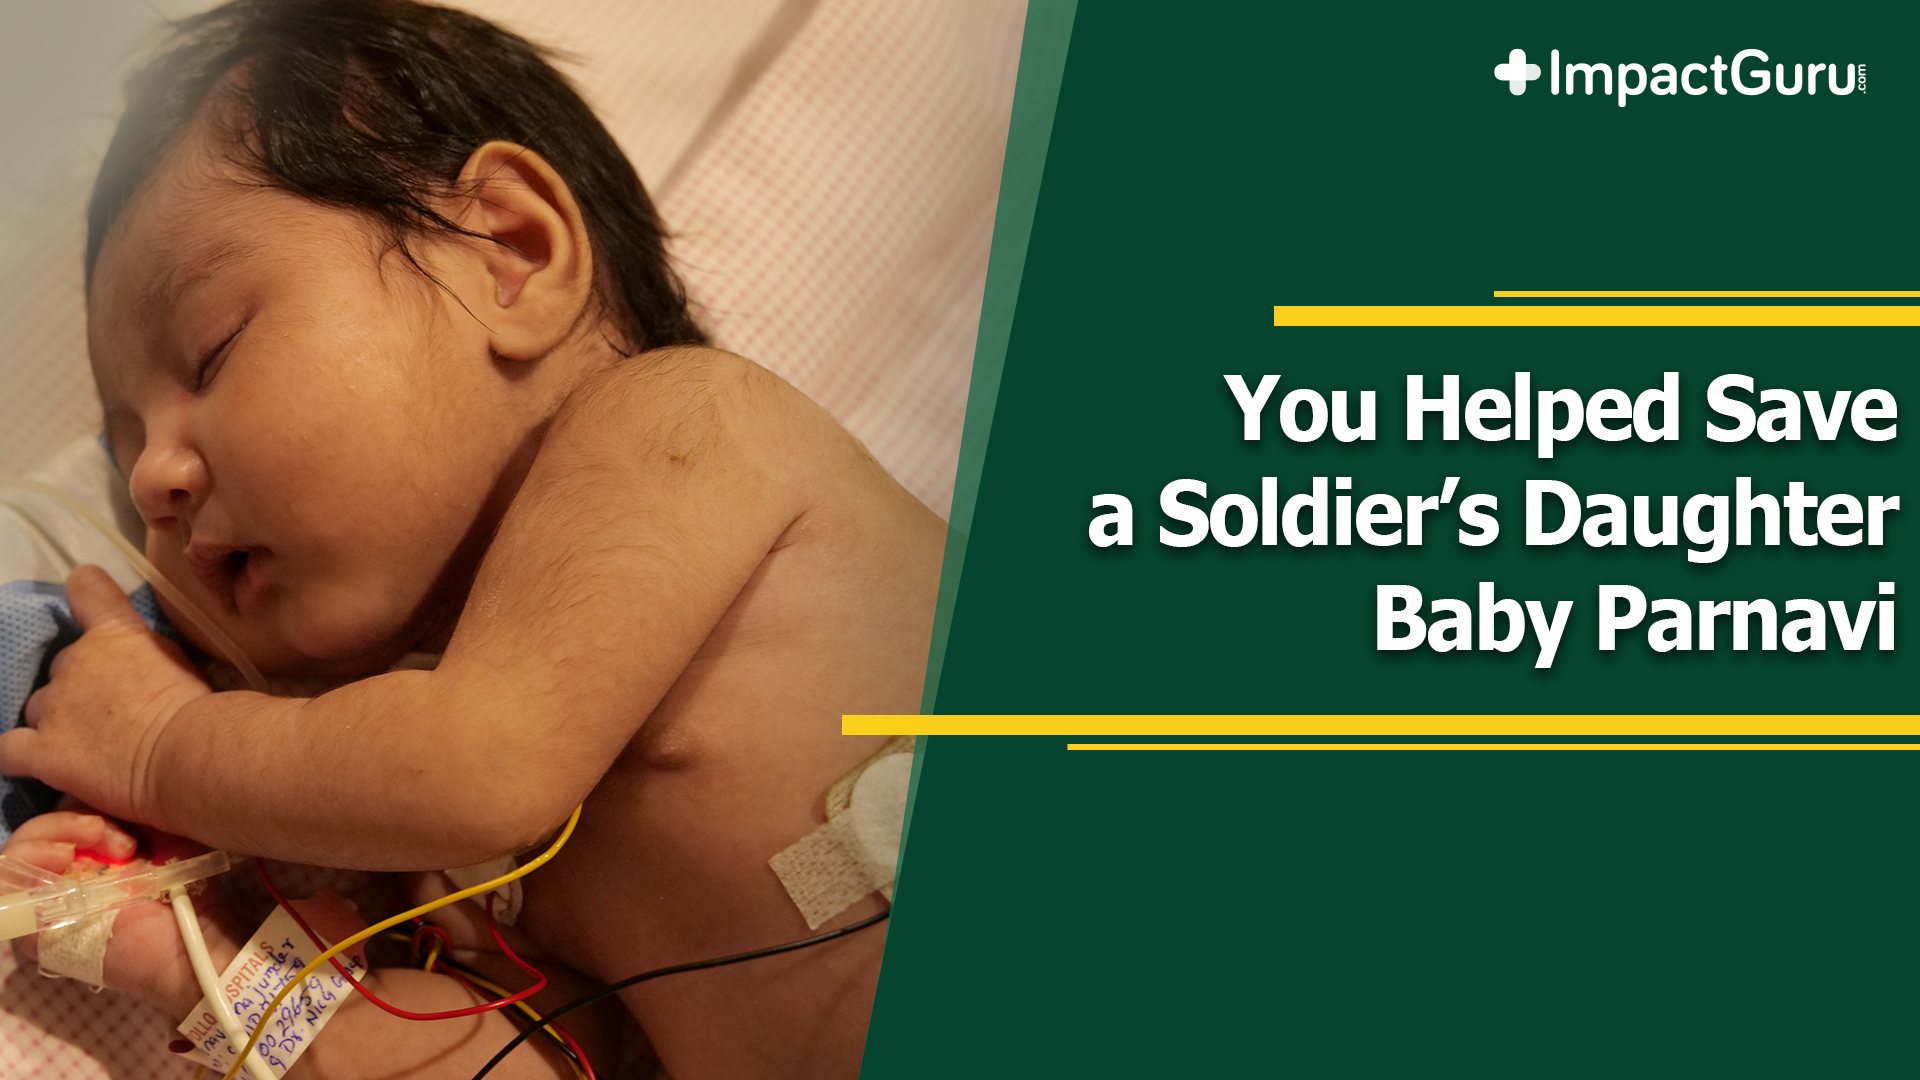 Generous Donors Save BSF Constable's Newborn, Baby Parnavi